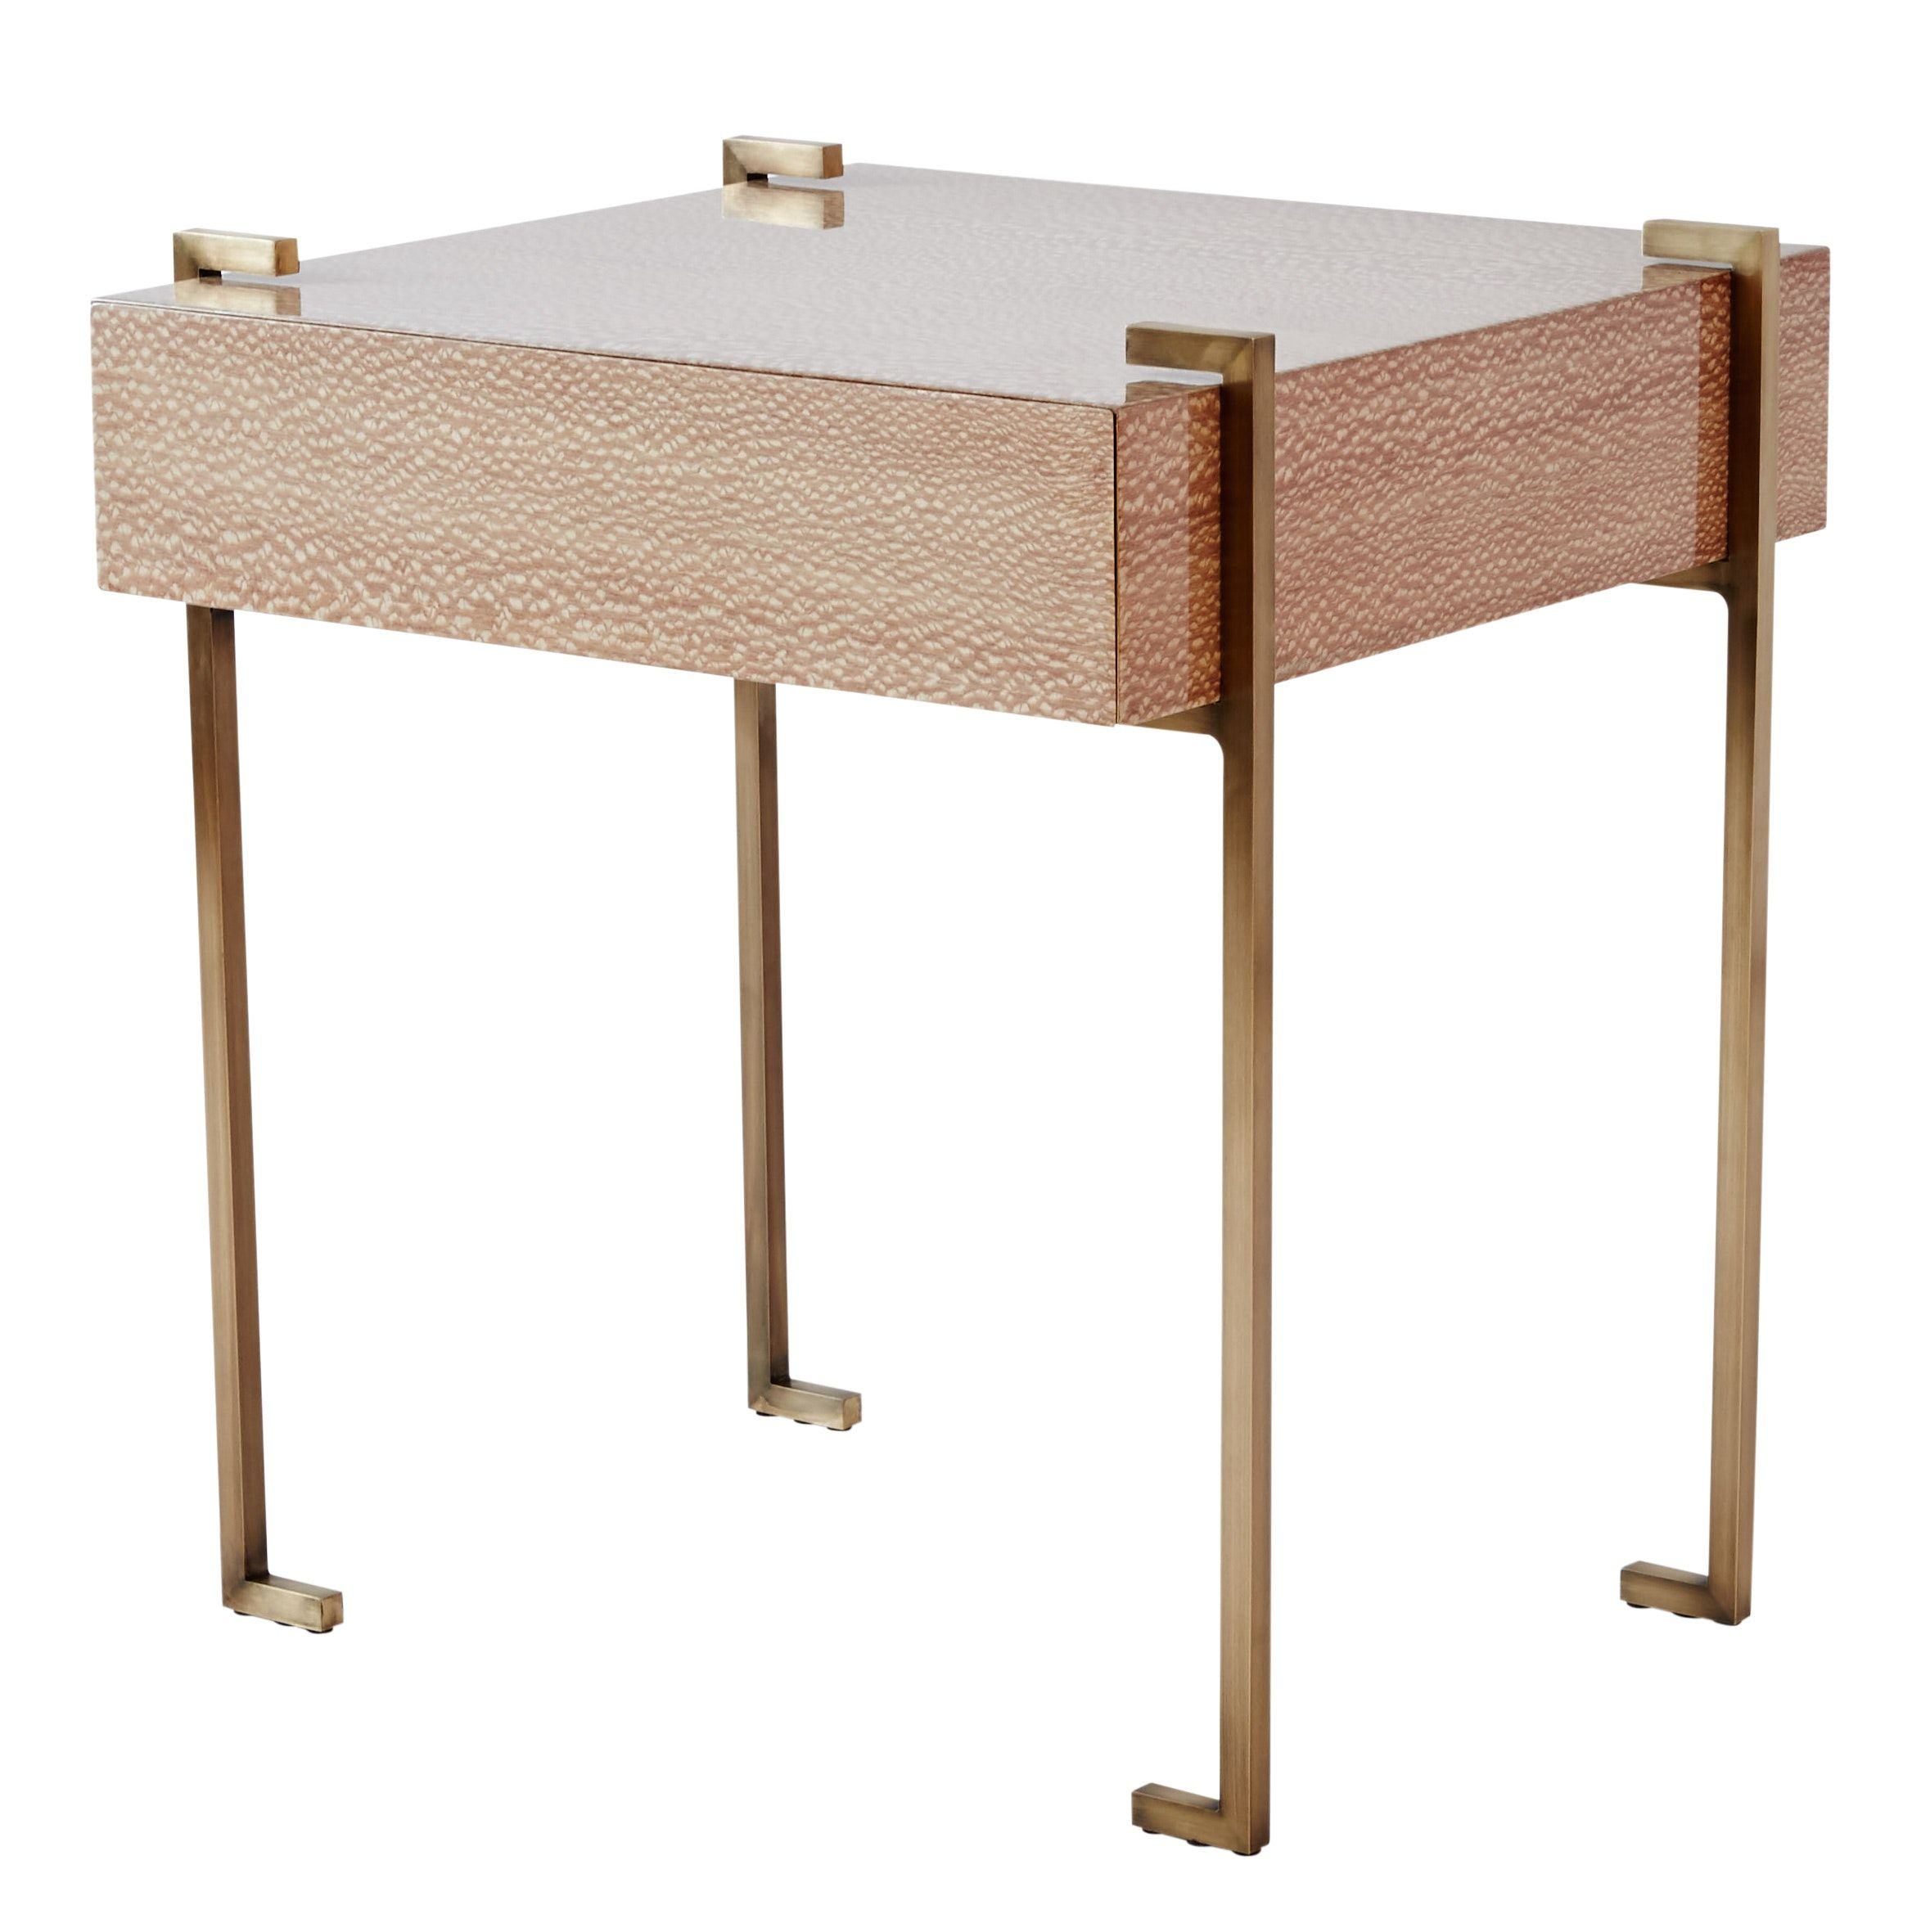 Buy ARTEMIS SIDE TABLE By Kimberly Denman   Made To Order Designer Furniture  From